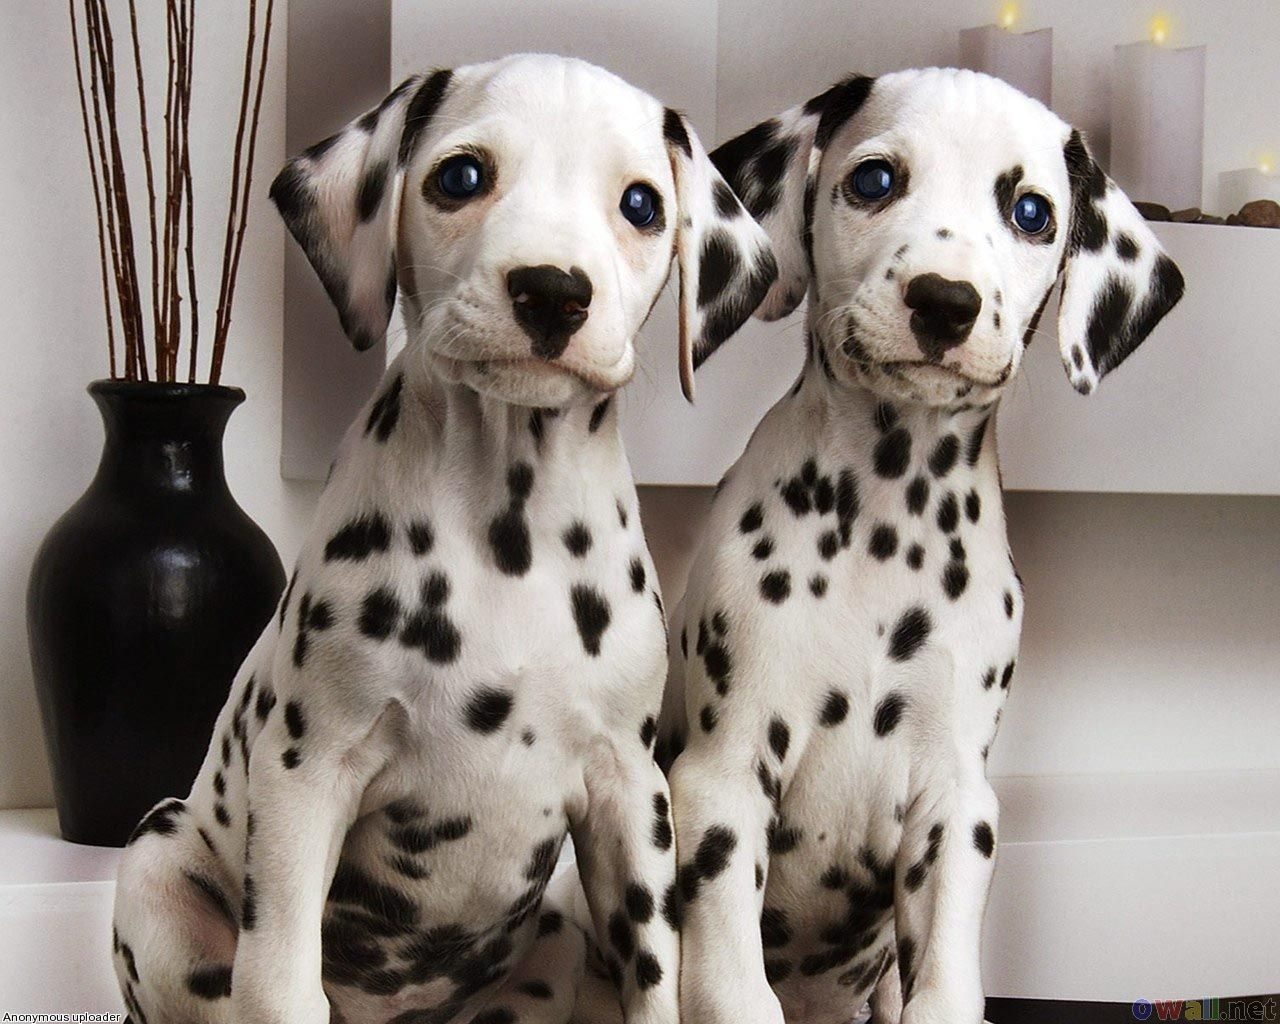 Dalmation Pups I'm going to be the crazy dog lady because I must had these dogs!